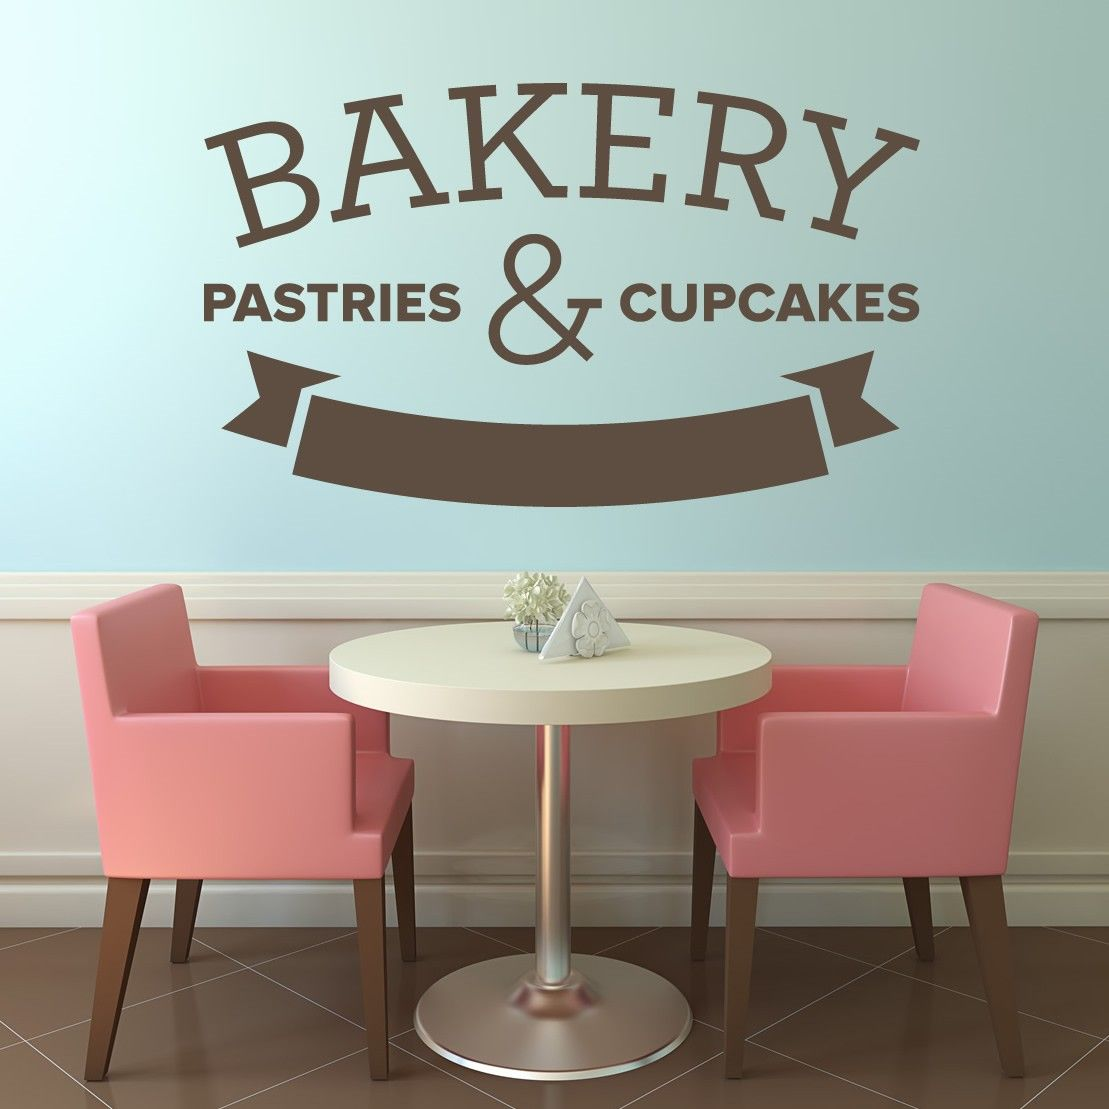 Kitchen Wall Bakery Patries And Cupcakes Cafe Kitchen Wall Art Decal Wall